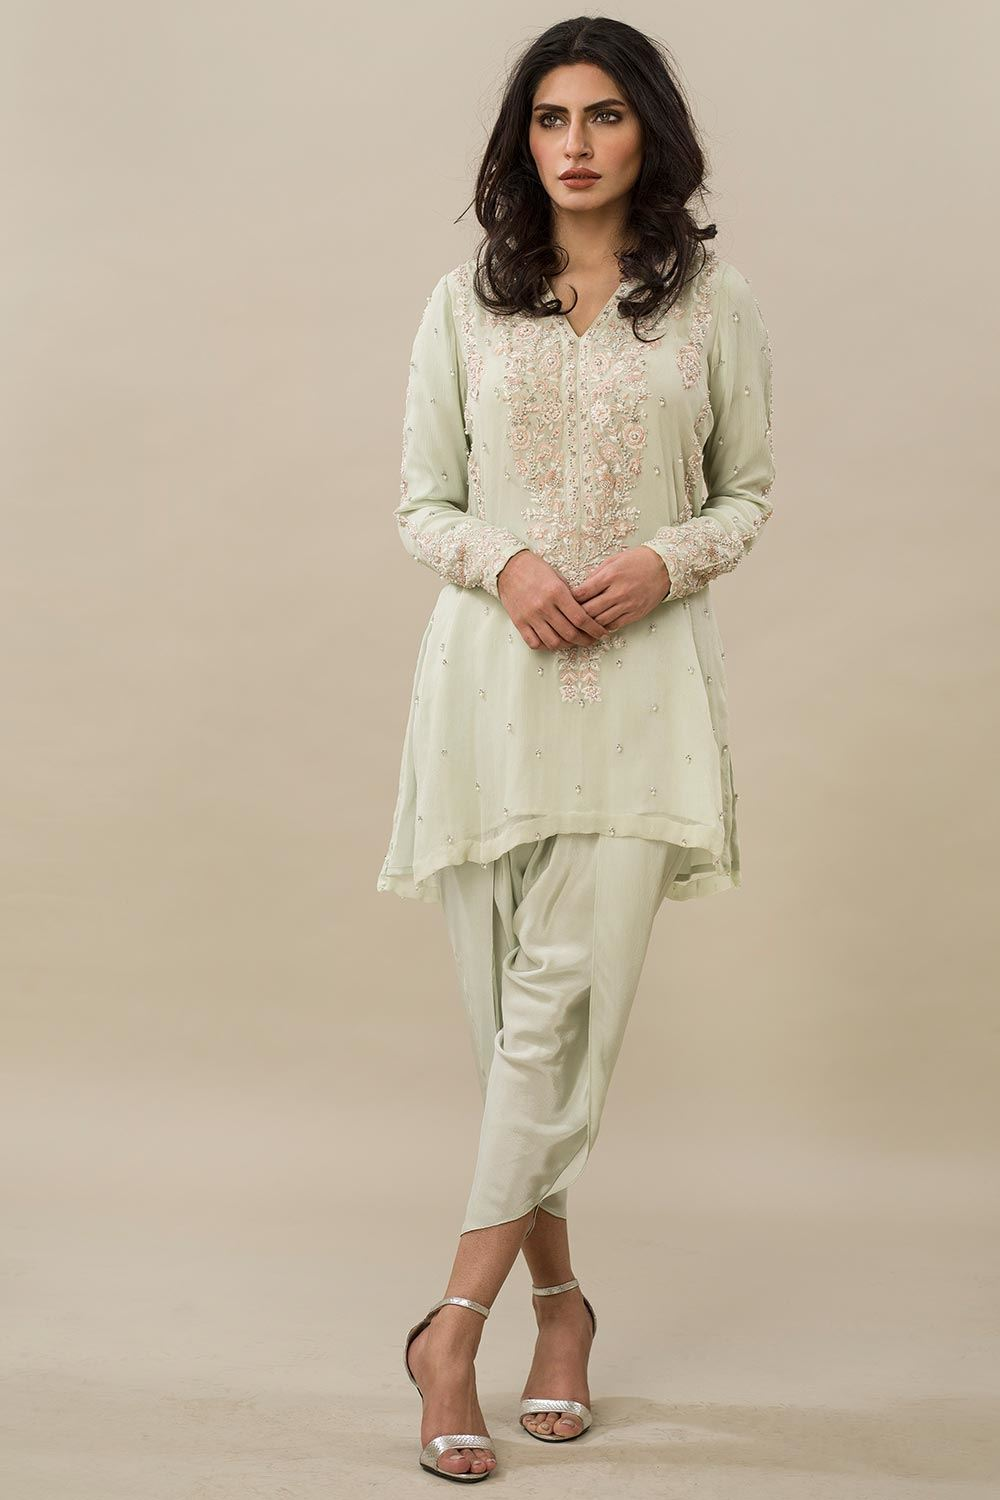 Resham Shirt with Tulip Pants for a Mehndi Ceremony Party